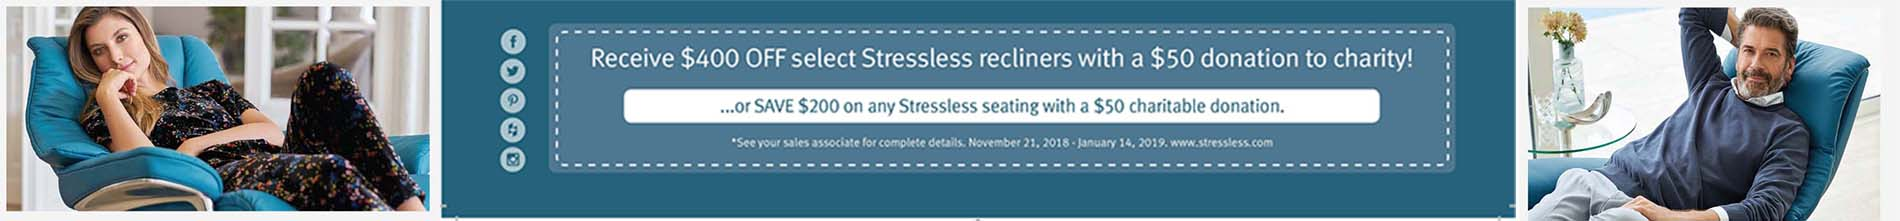 stressless charity promotion